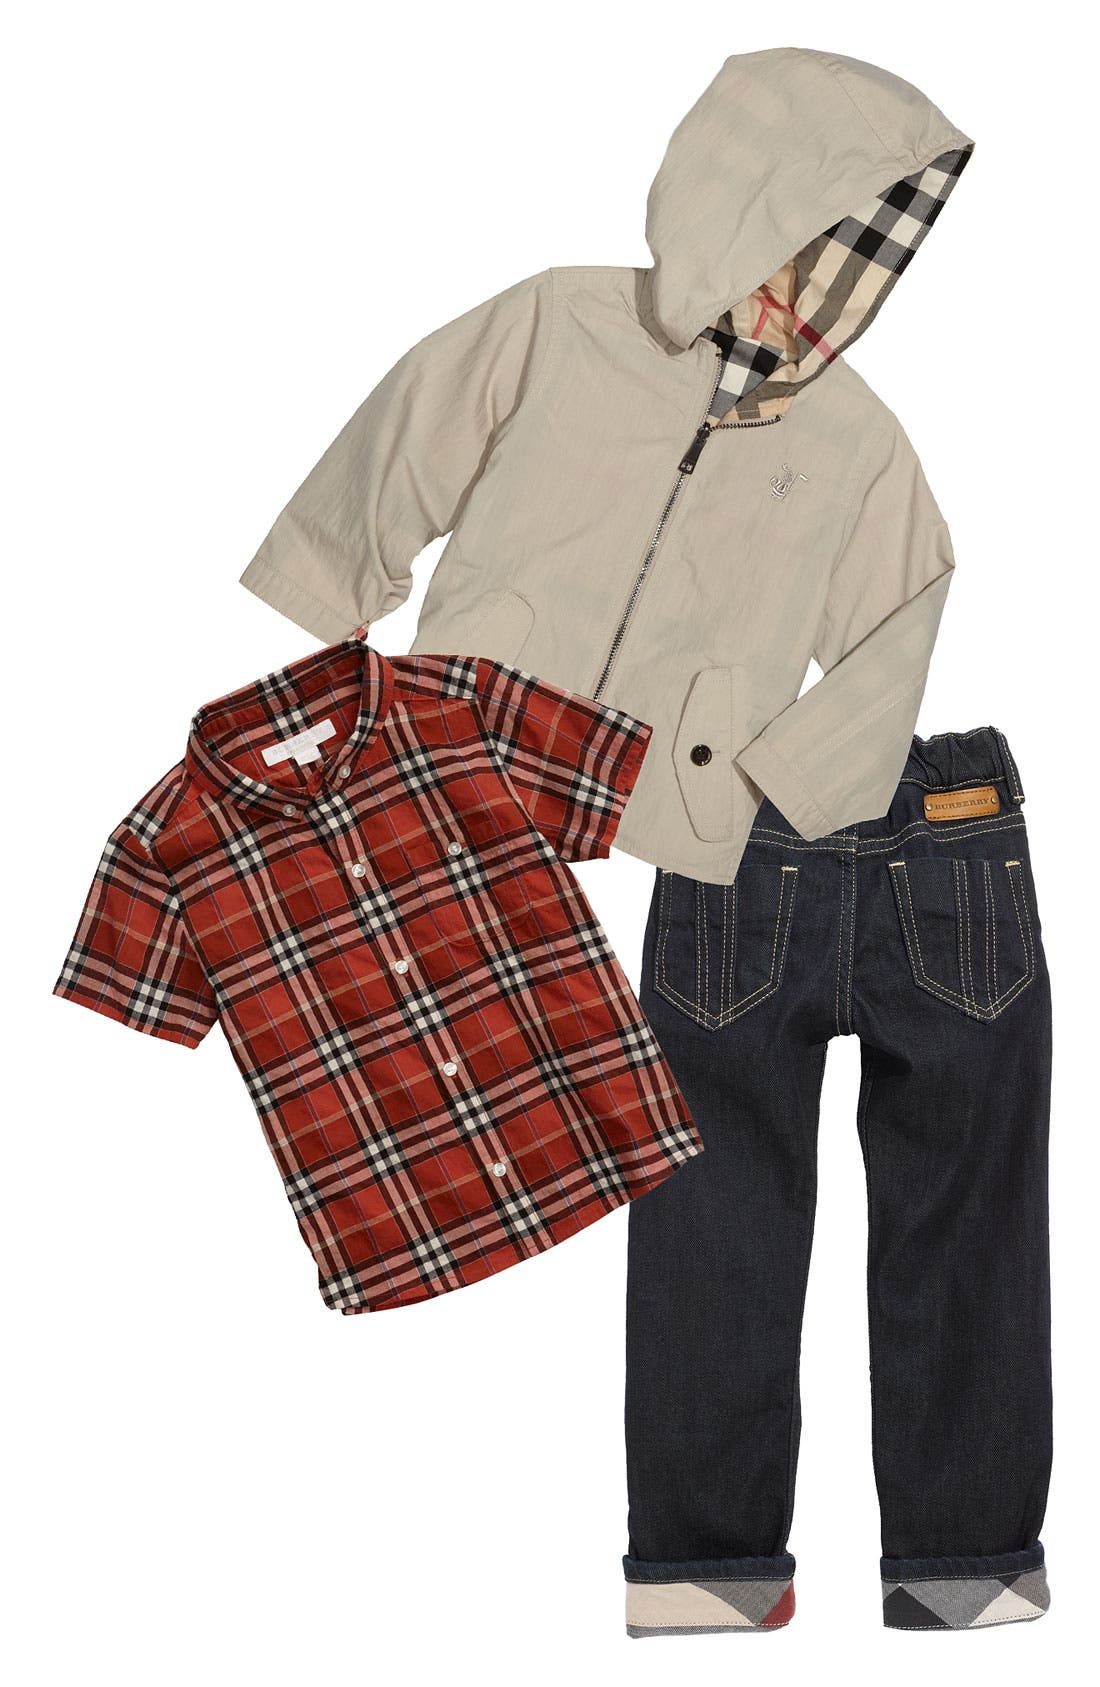 Alternate Image 1 Selected - Burberry Jacket, Shirt & Jeans (Toddler)